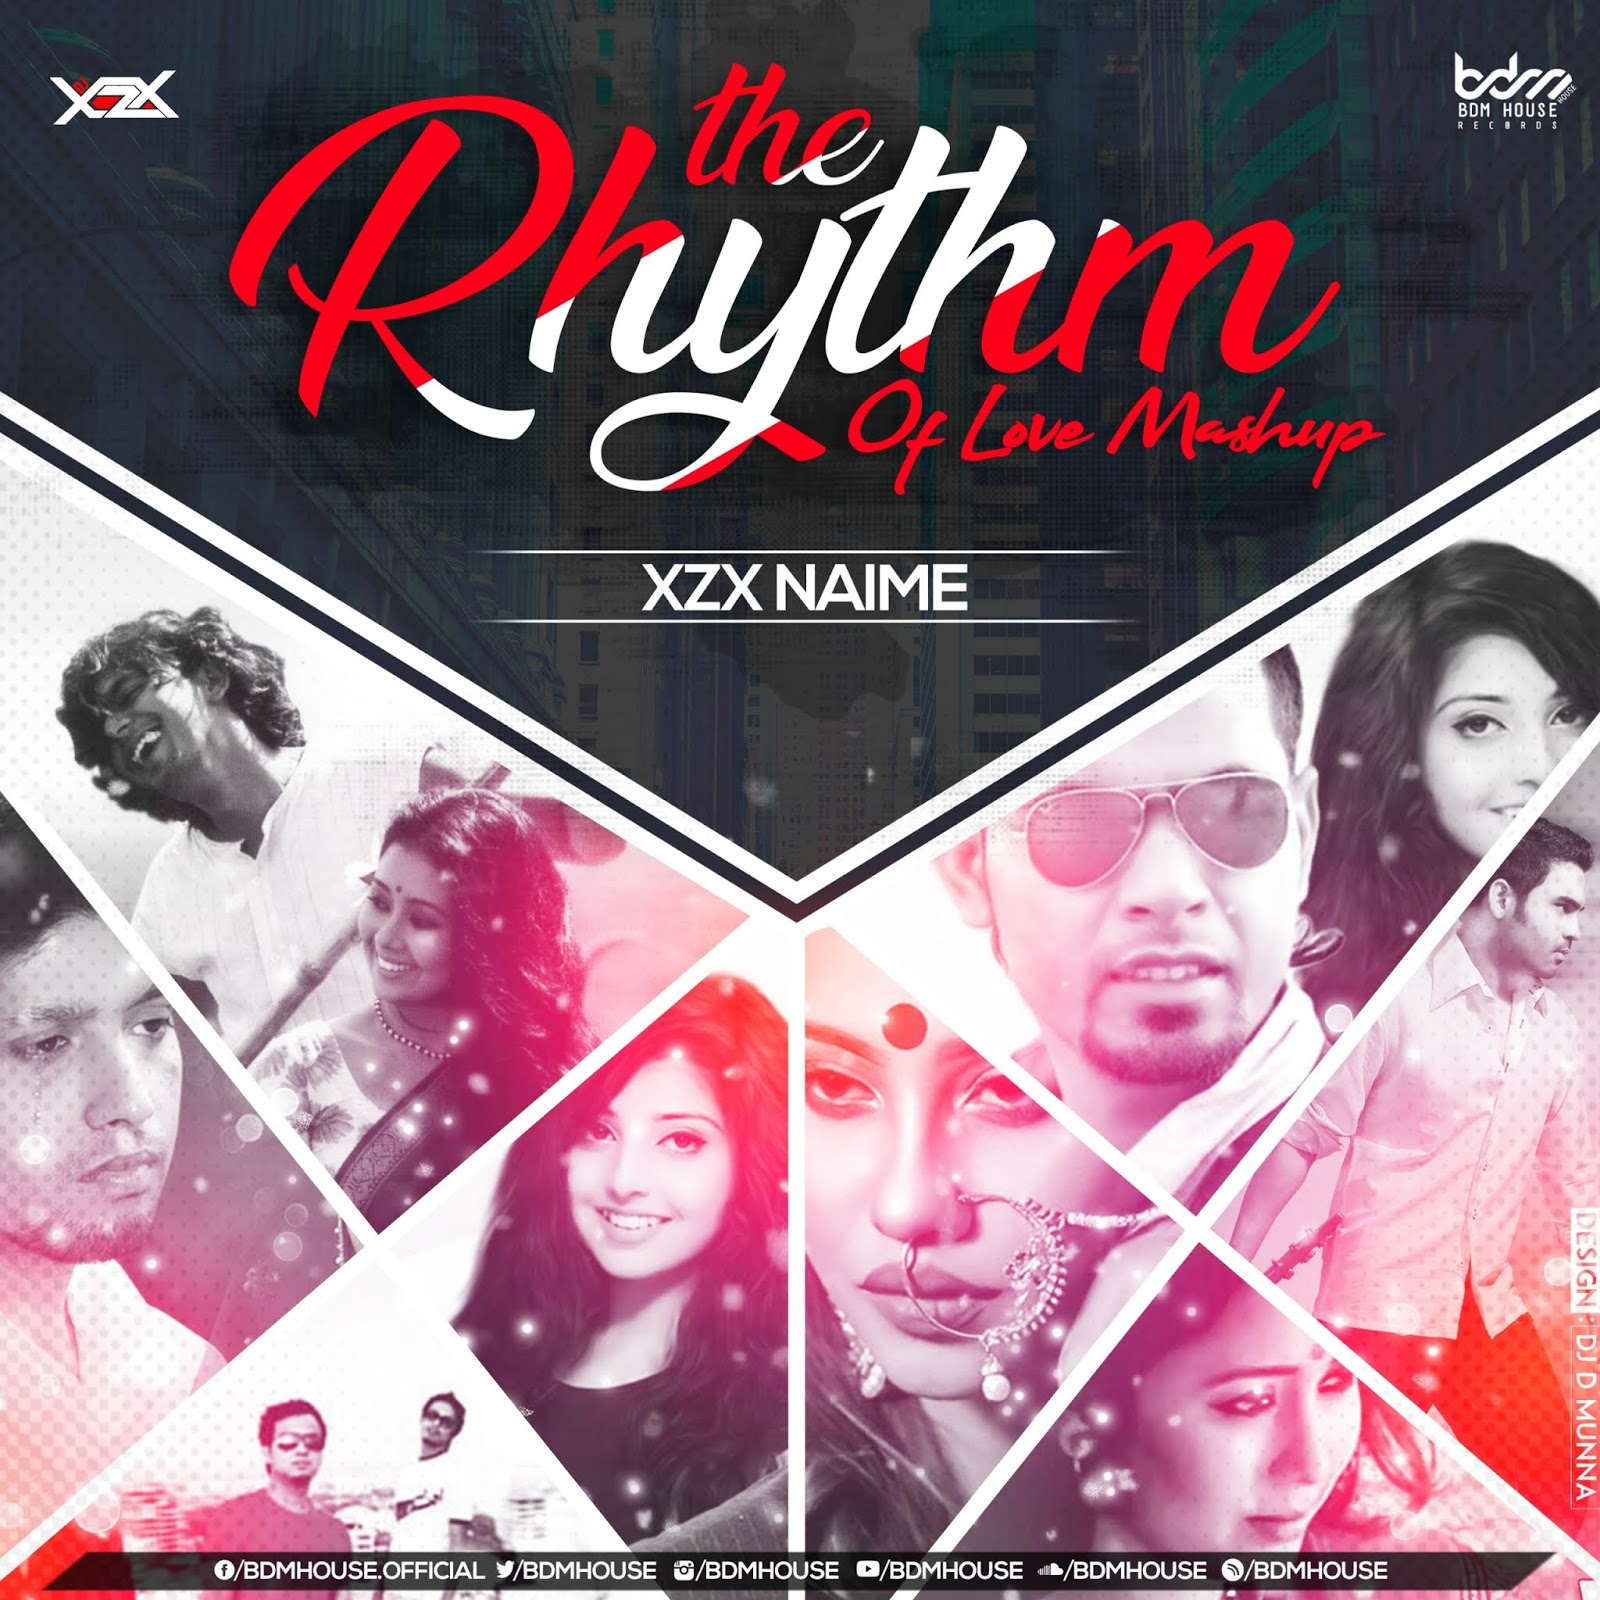 THE RHYTHM OF LOVE MASHUP - DJ XZX NAIME